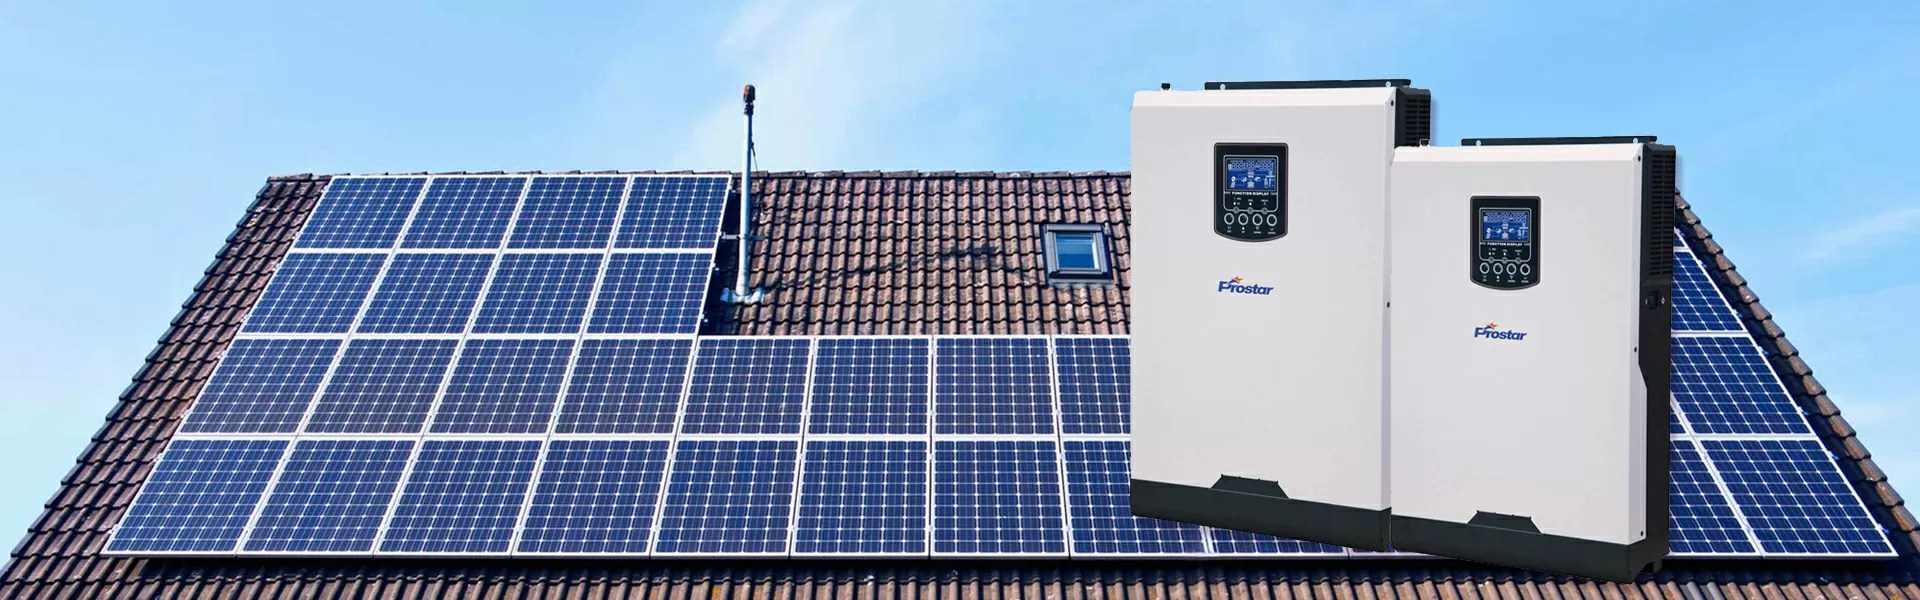 Off-grid Solar Inverter Working without Battery Bank